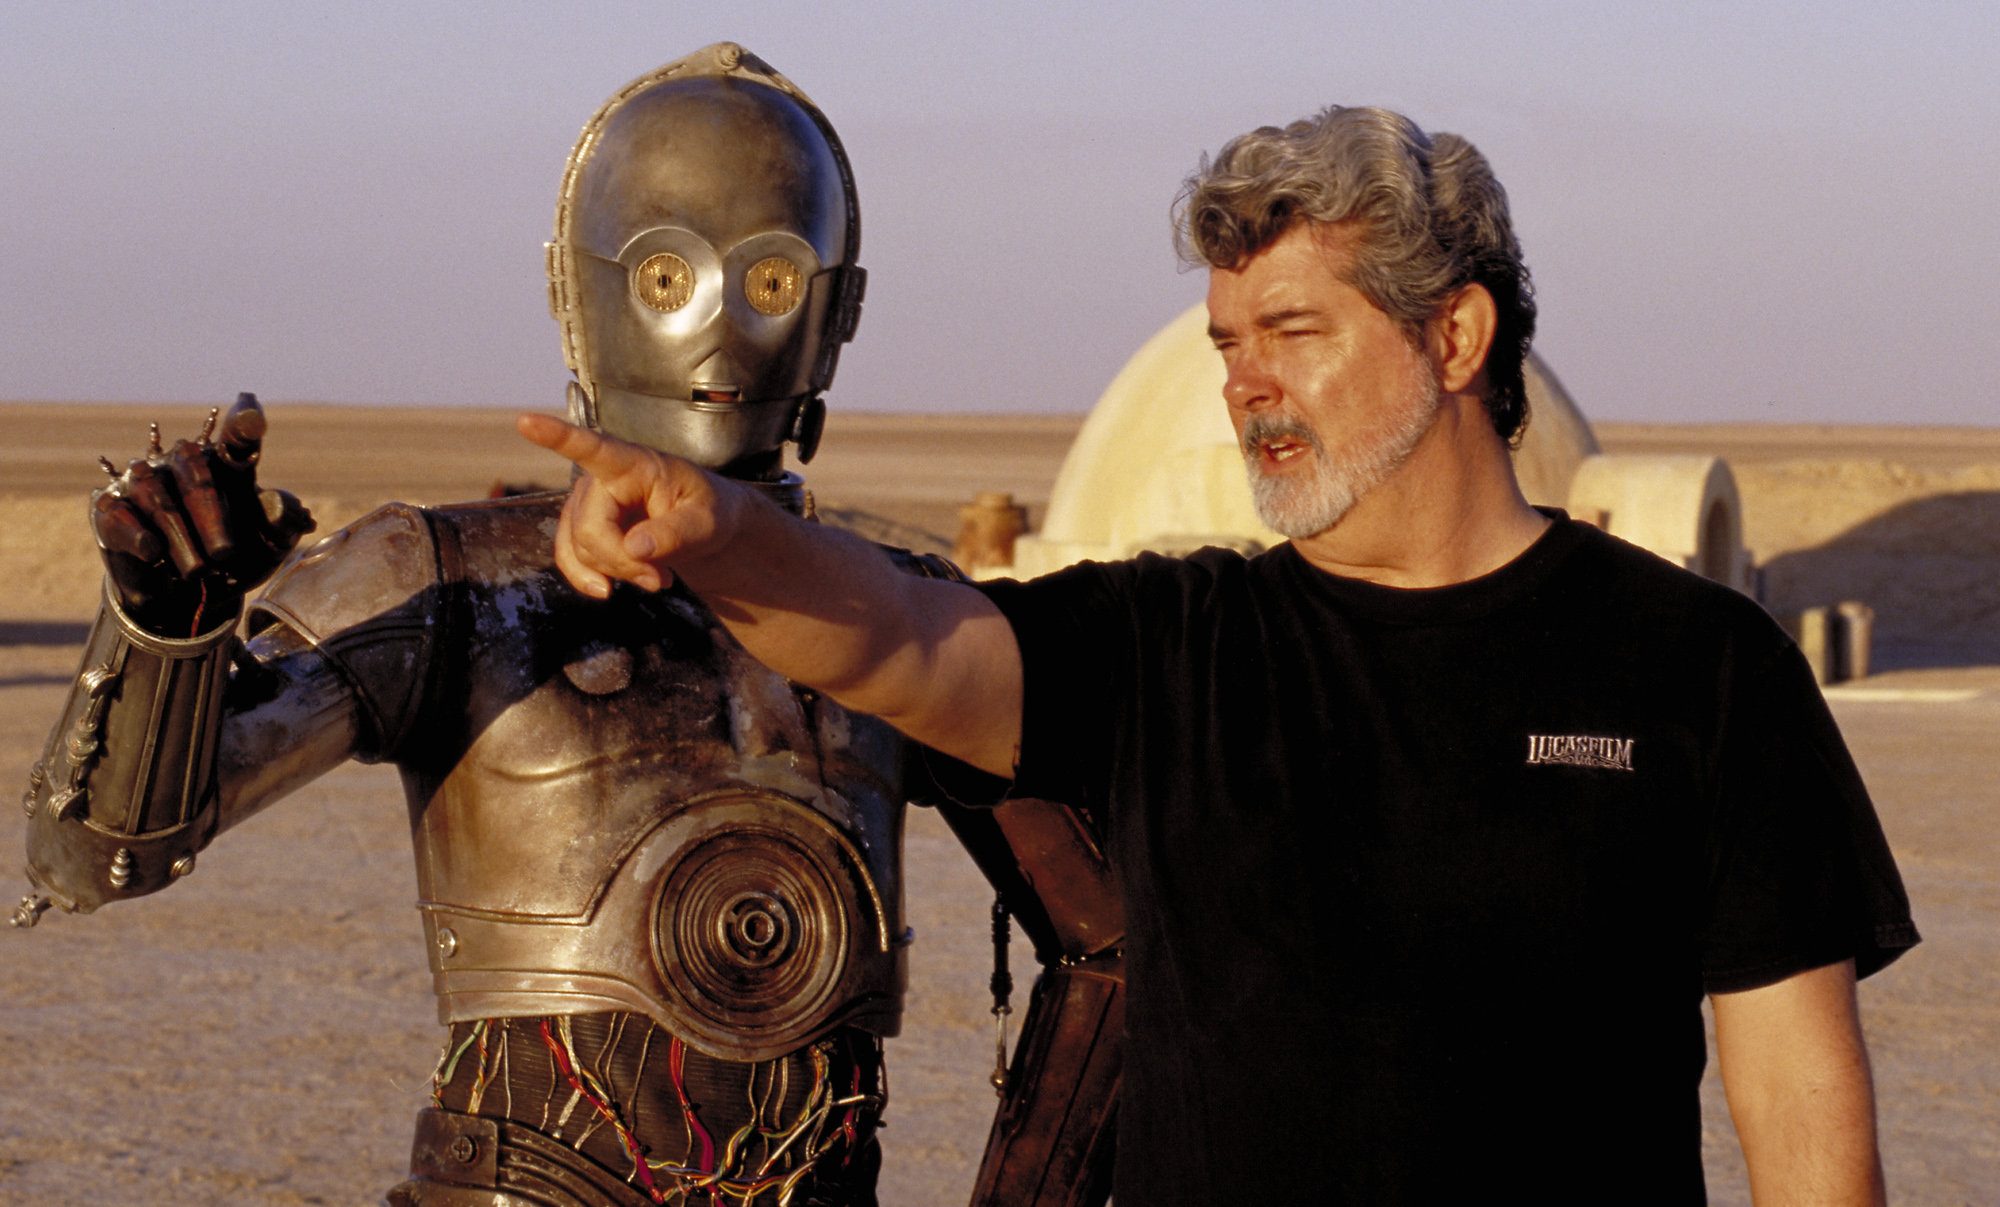 an analysis of the movie star wars directed by george lucas